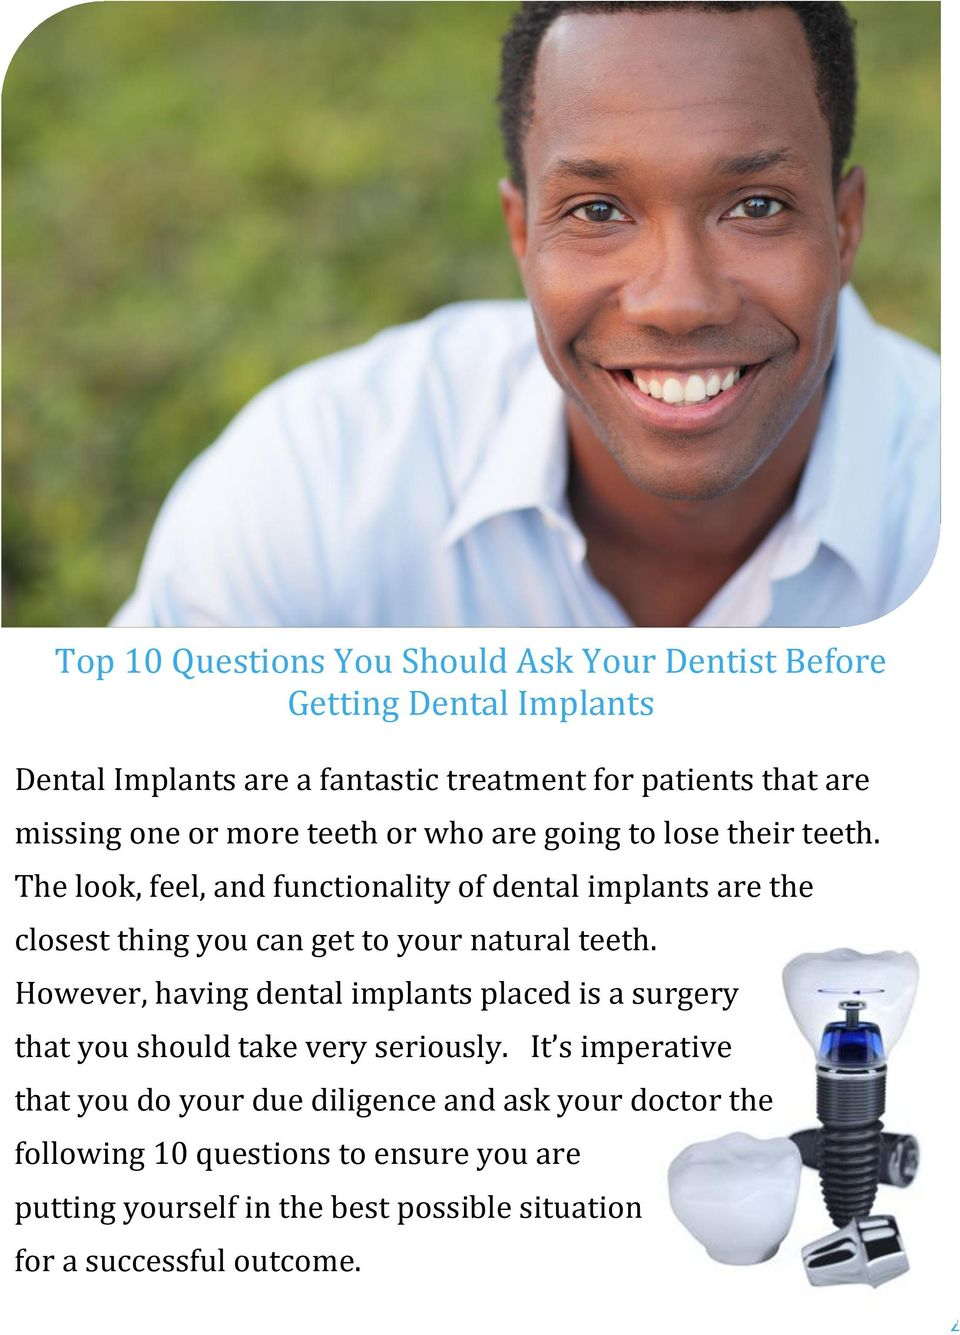 The look, feel, and functionality of dental implants are the closest thing you can get to your natural teeth.